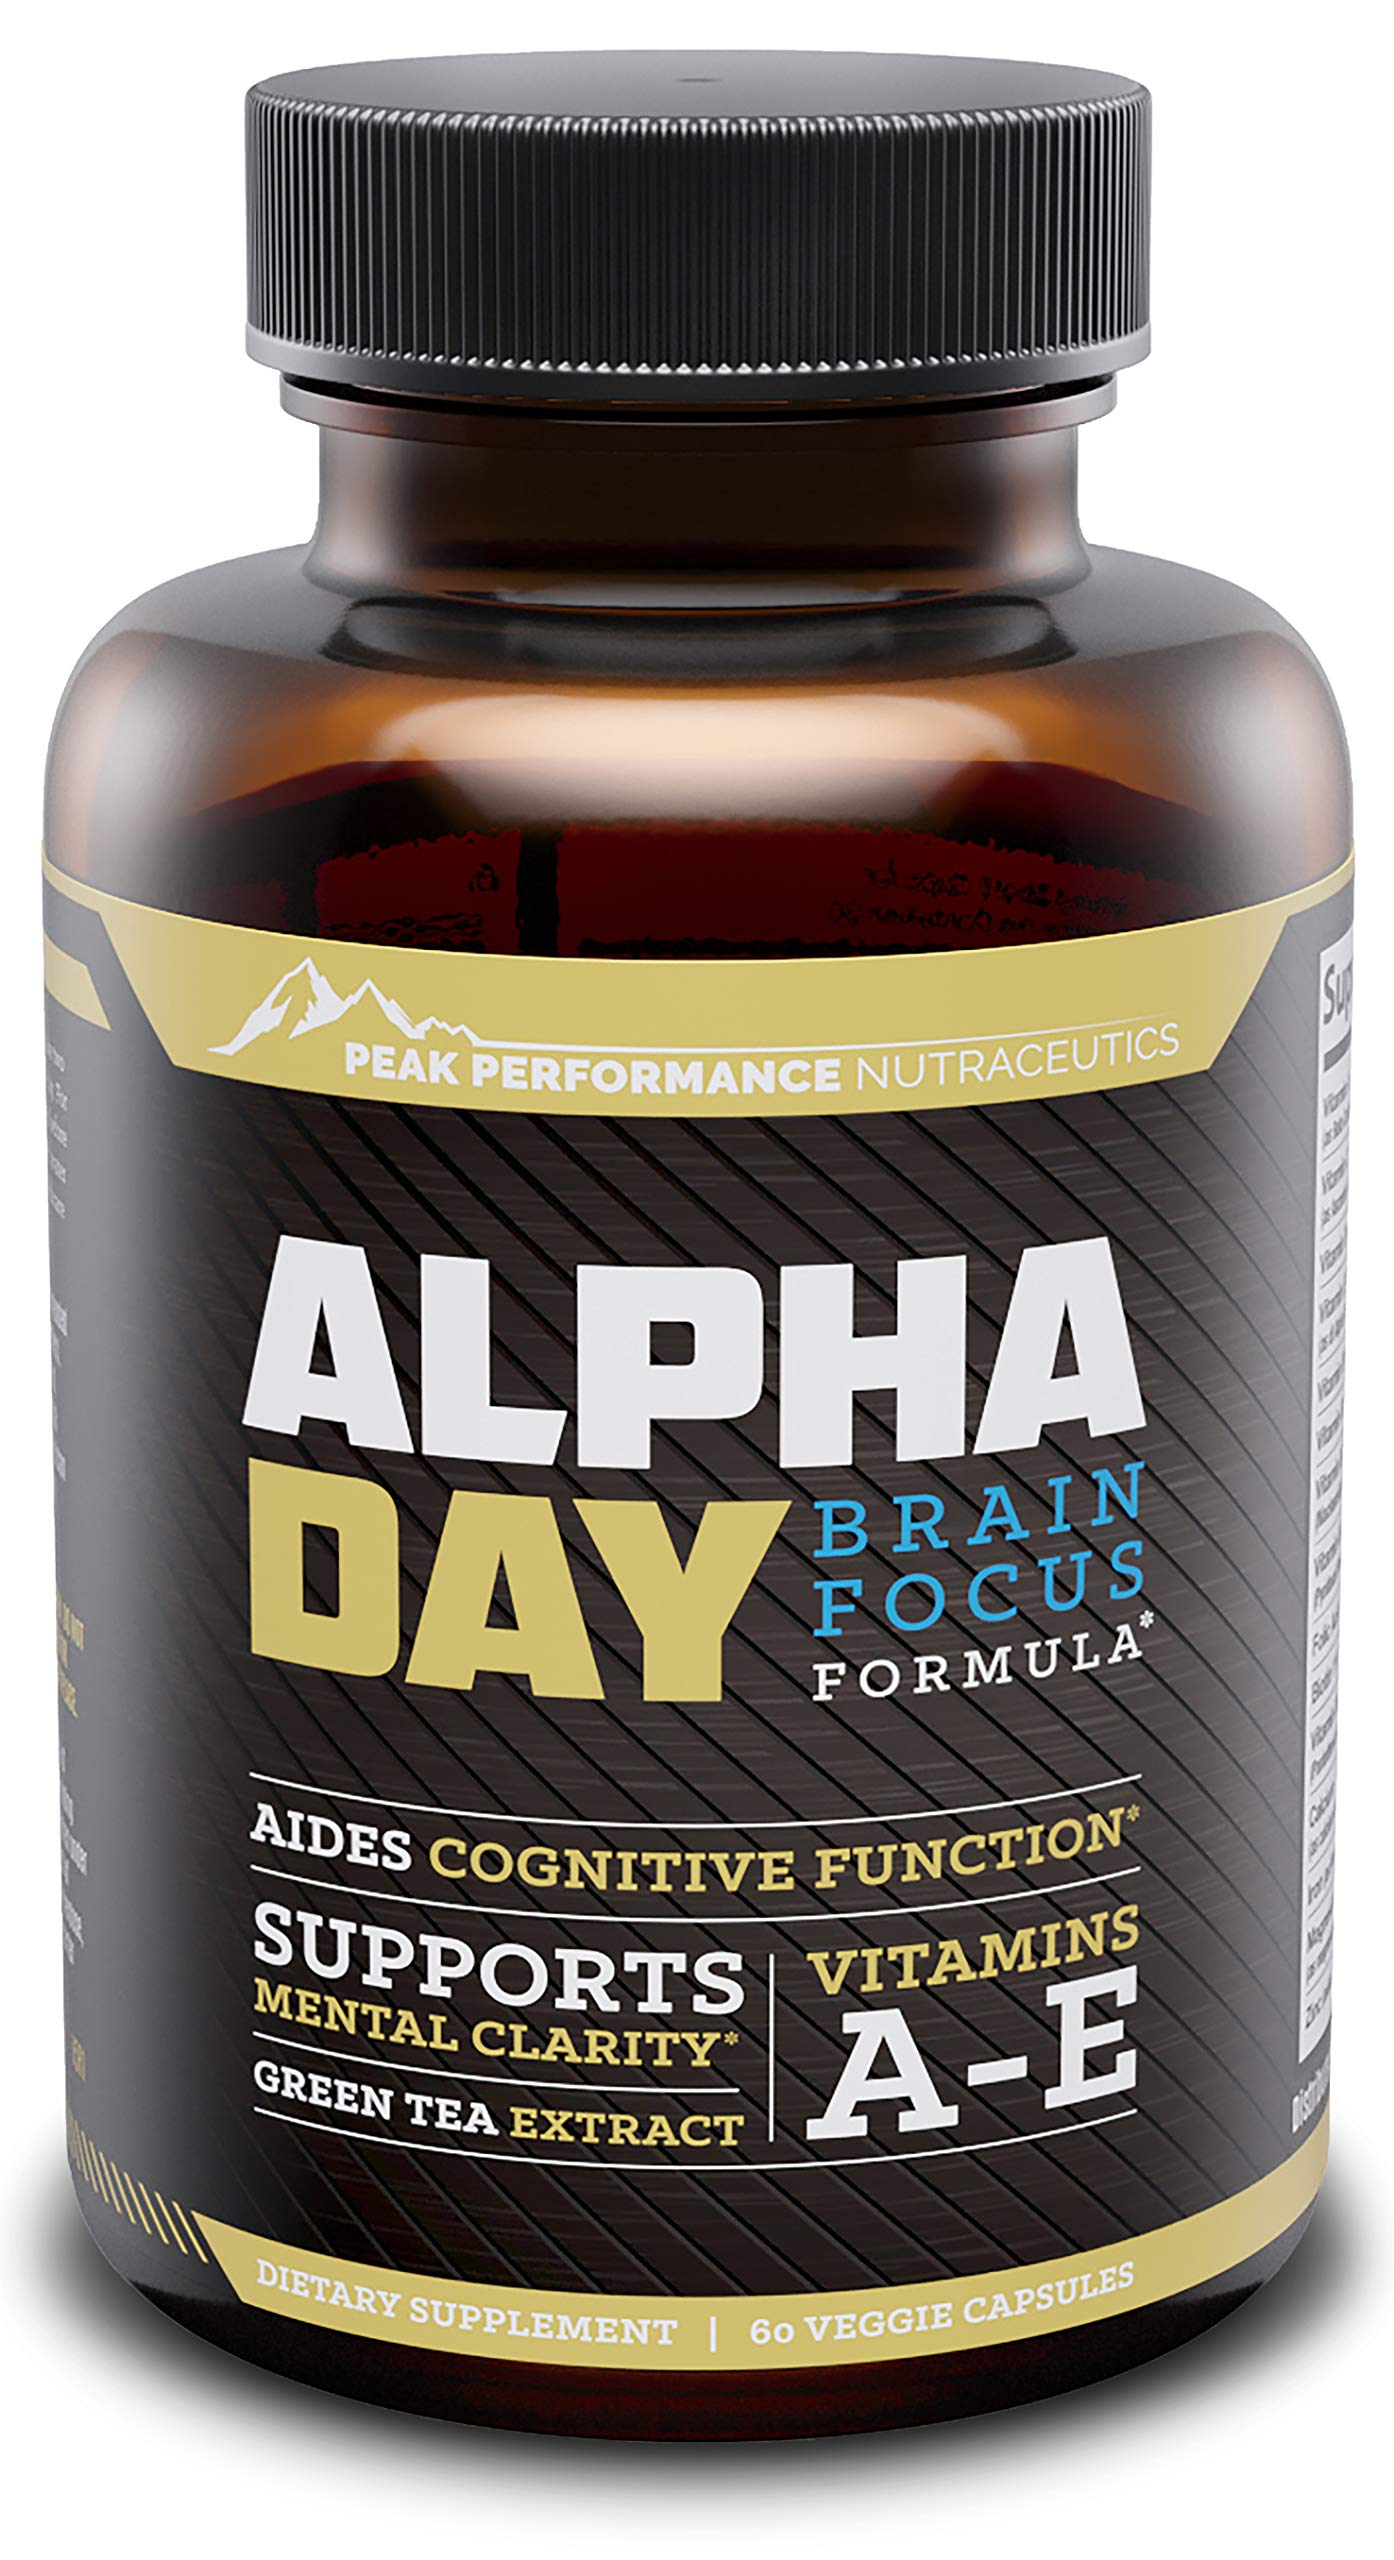 Alpha Day Nootropic Brain Supplement Vitamins. Focus and Energy Pills, Memory Booster, Mental Clarity, Concentration Support and Cognitive Enhancement. Bacopa Monnieri, Huperzine A and DMAE. 60 Pills by Peak Performance Nutraceutics